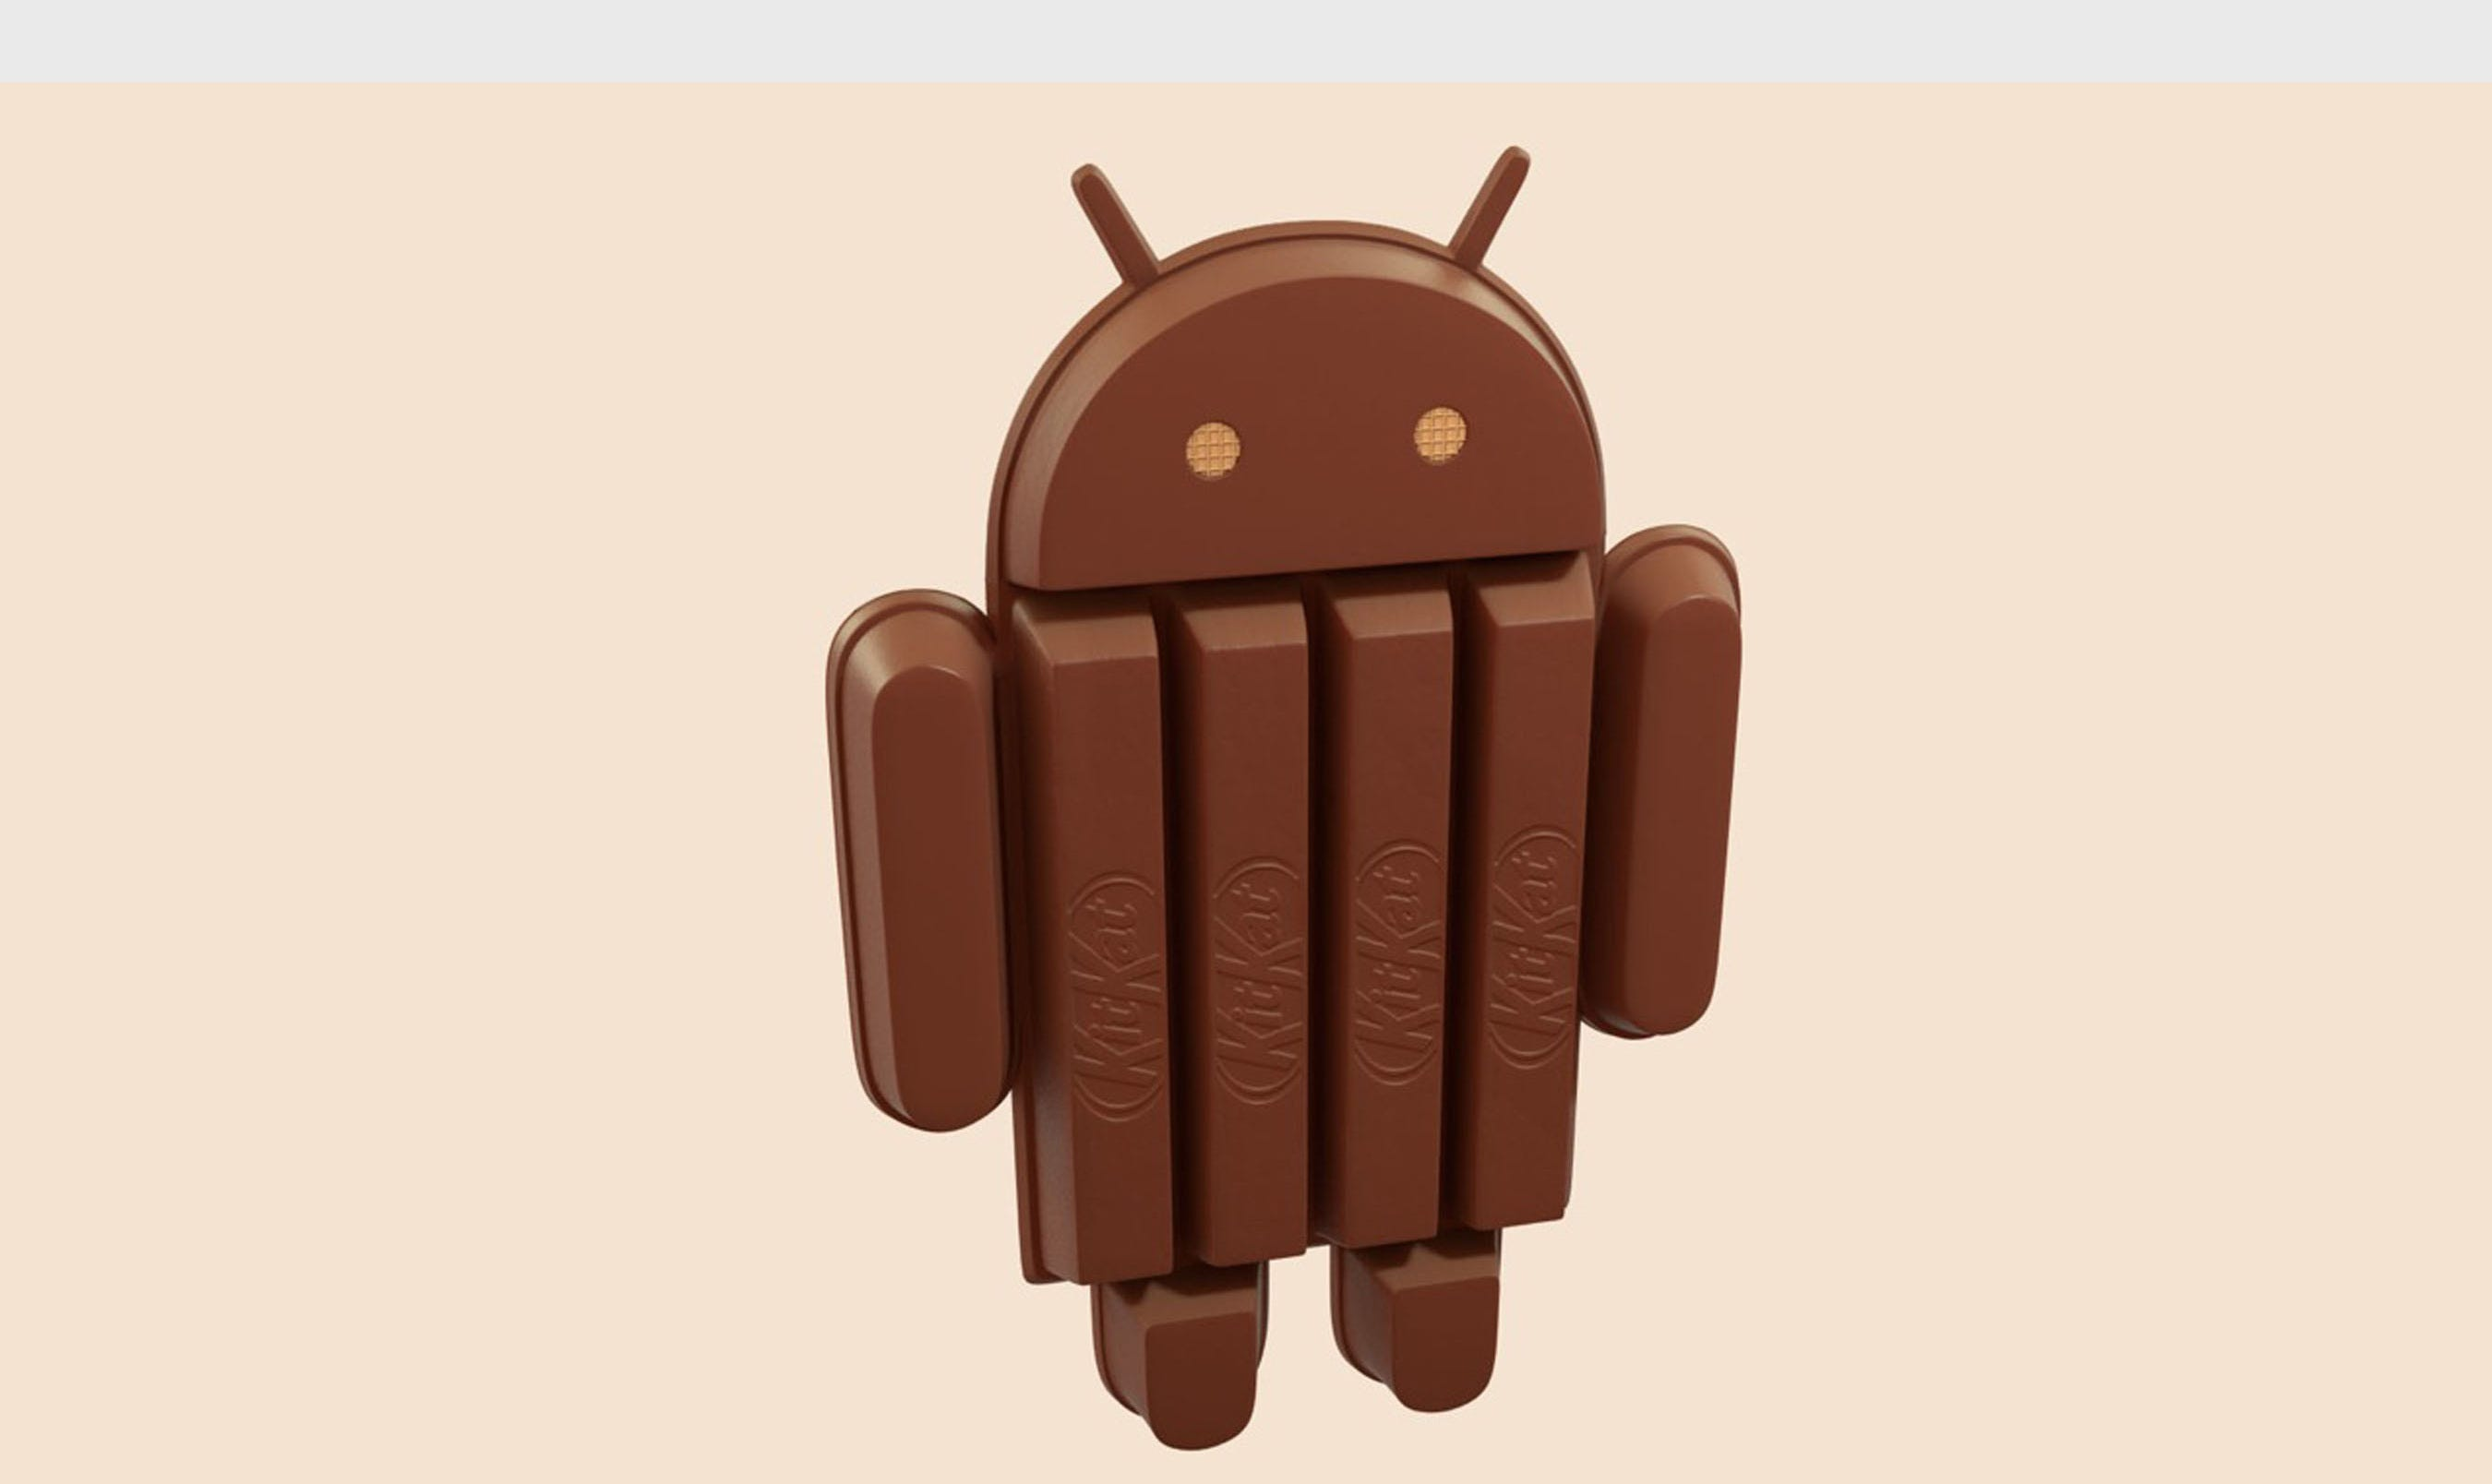 What is the android logo called